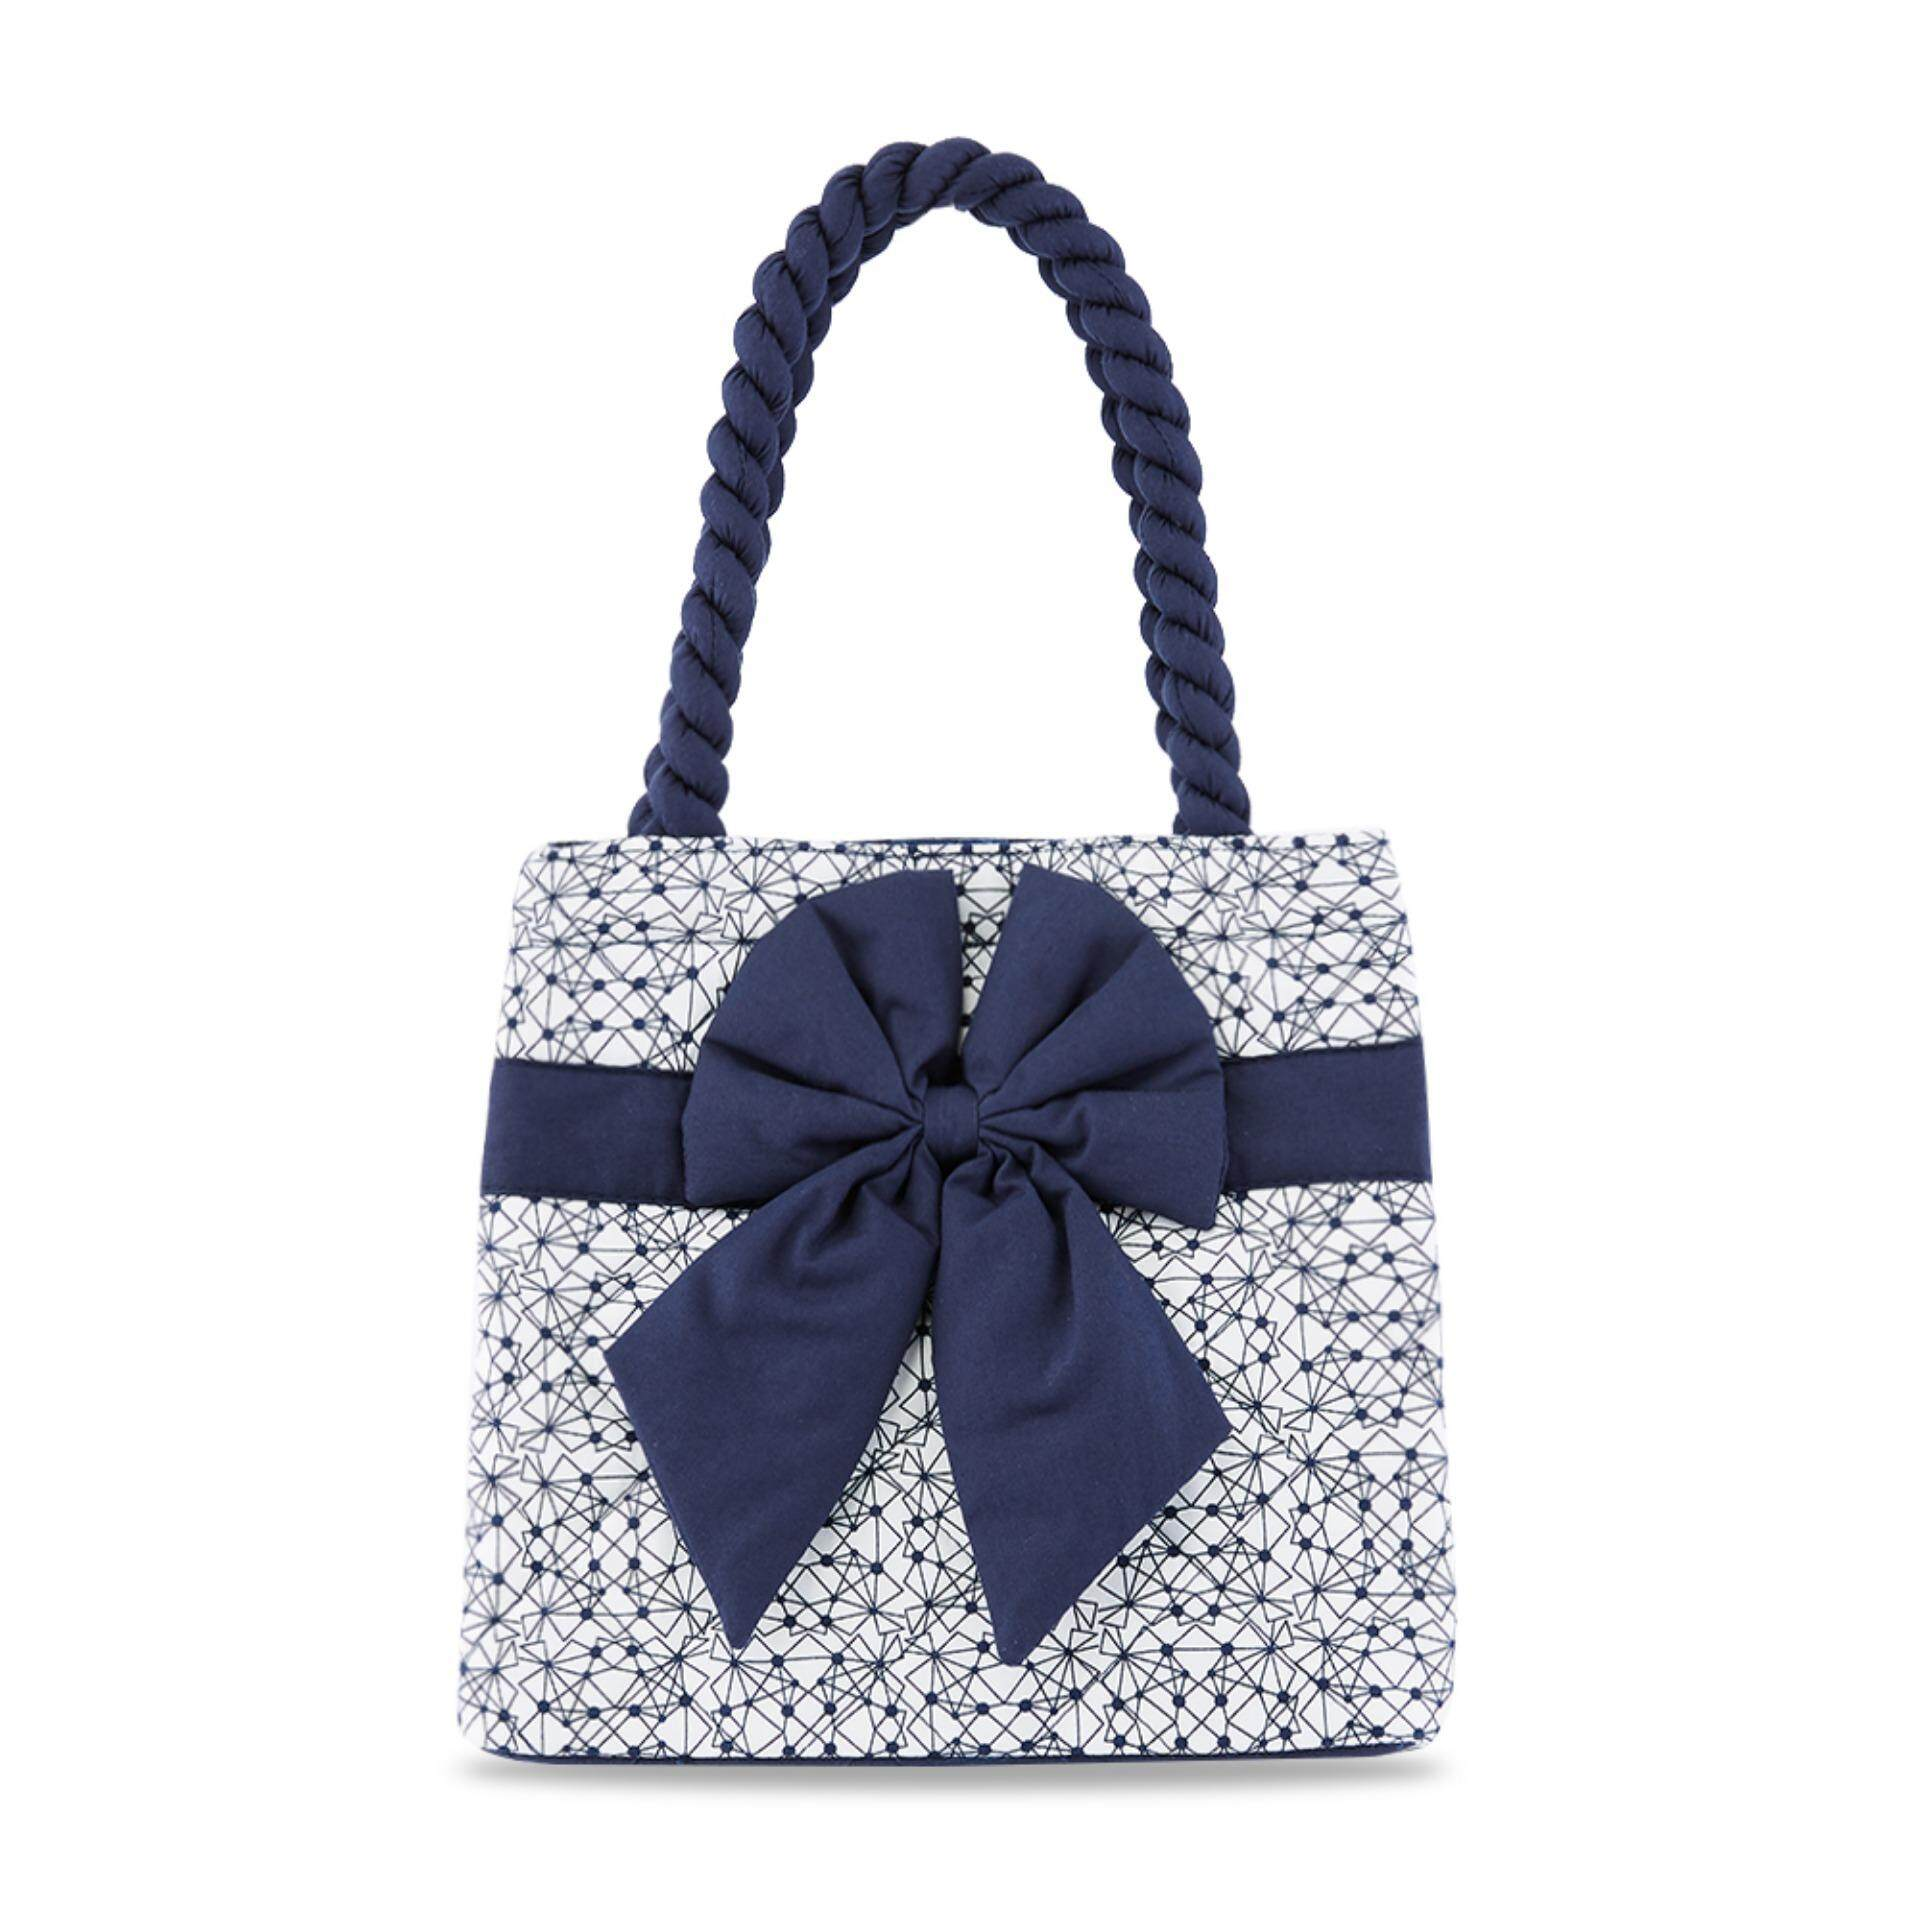 3104834d8047 รีวิว กระเป๋าถือ NaRaYa Geometric Printed Quilted with Bow ...